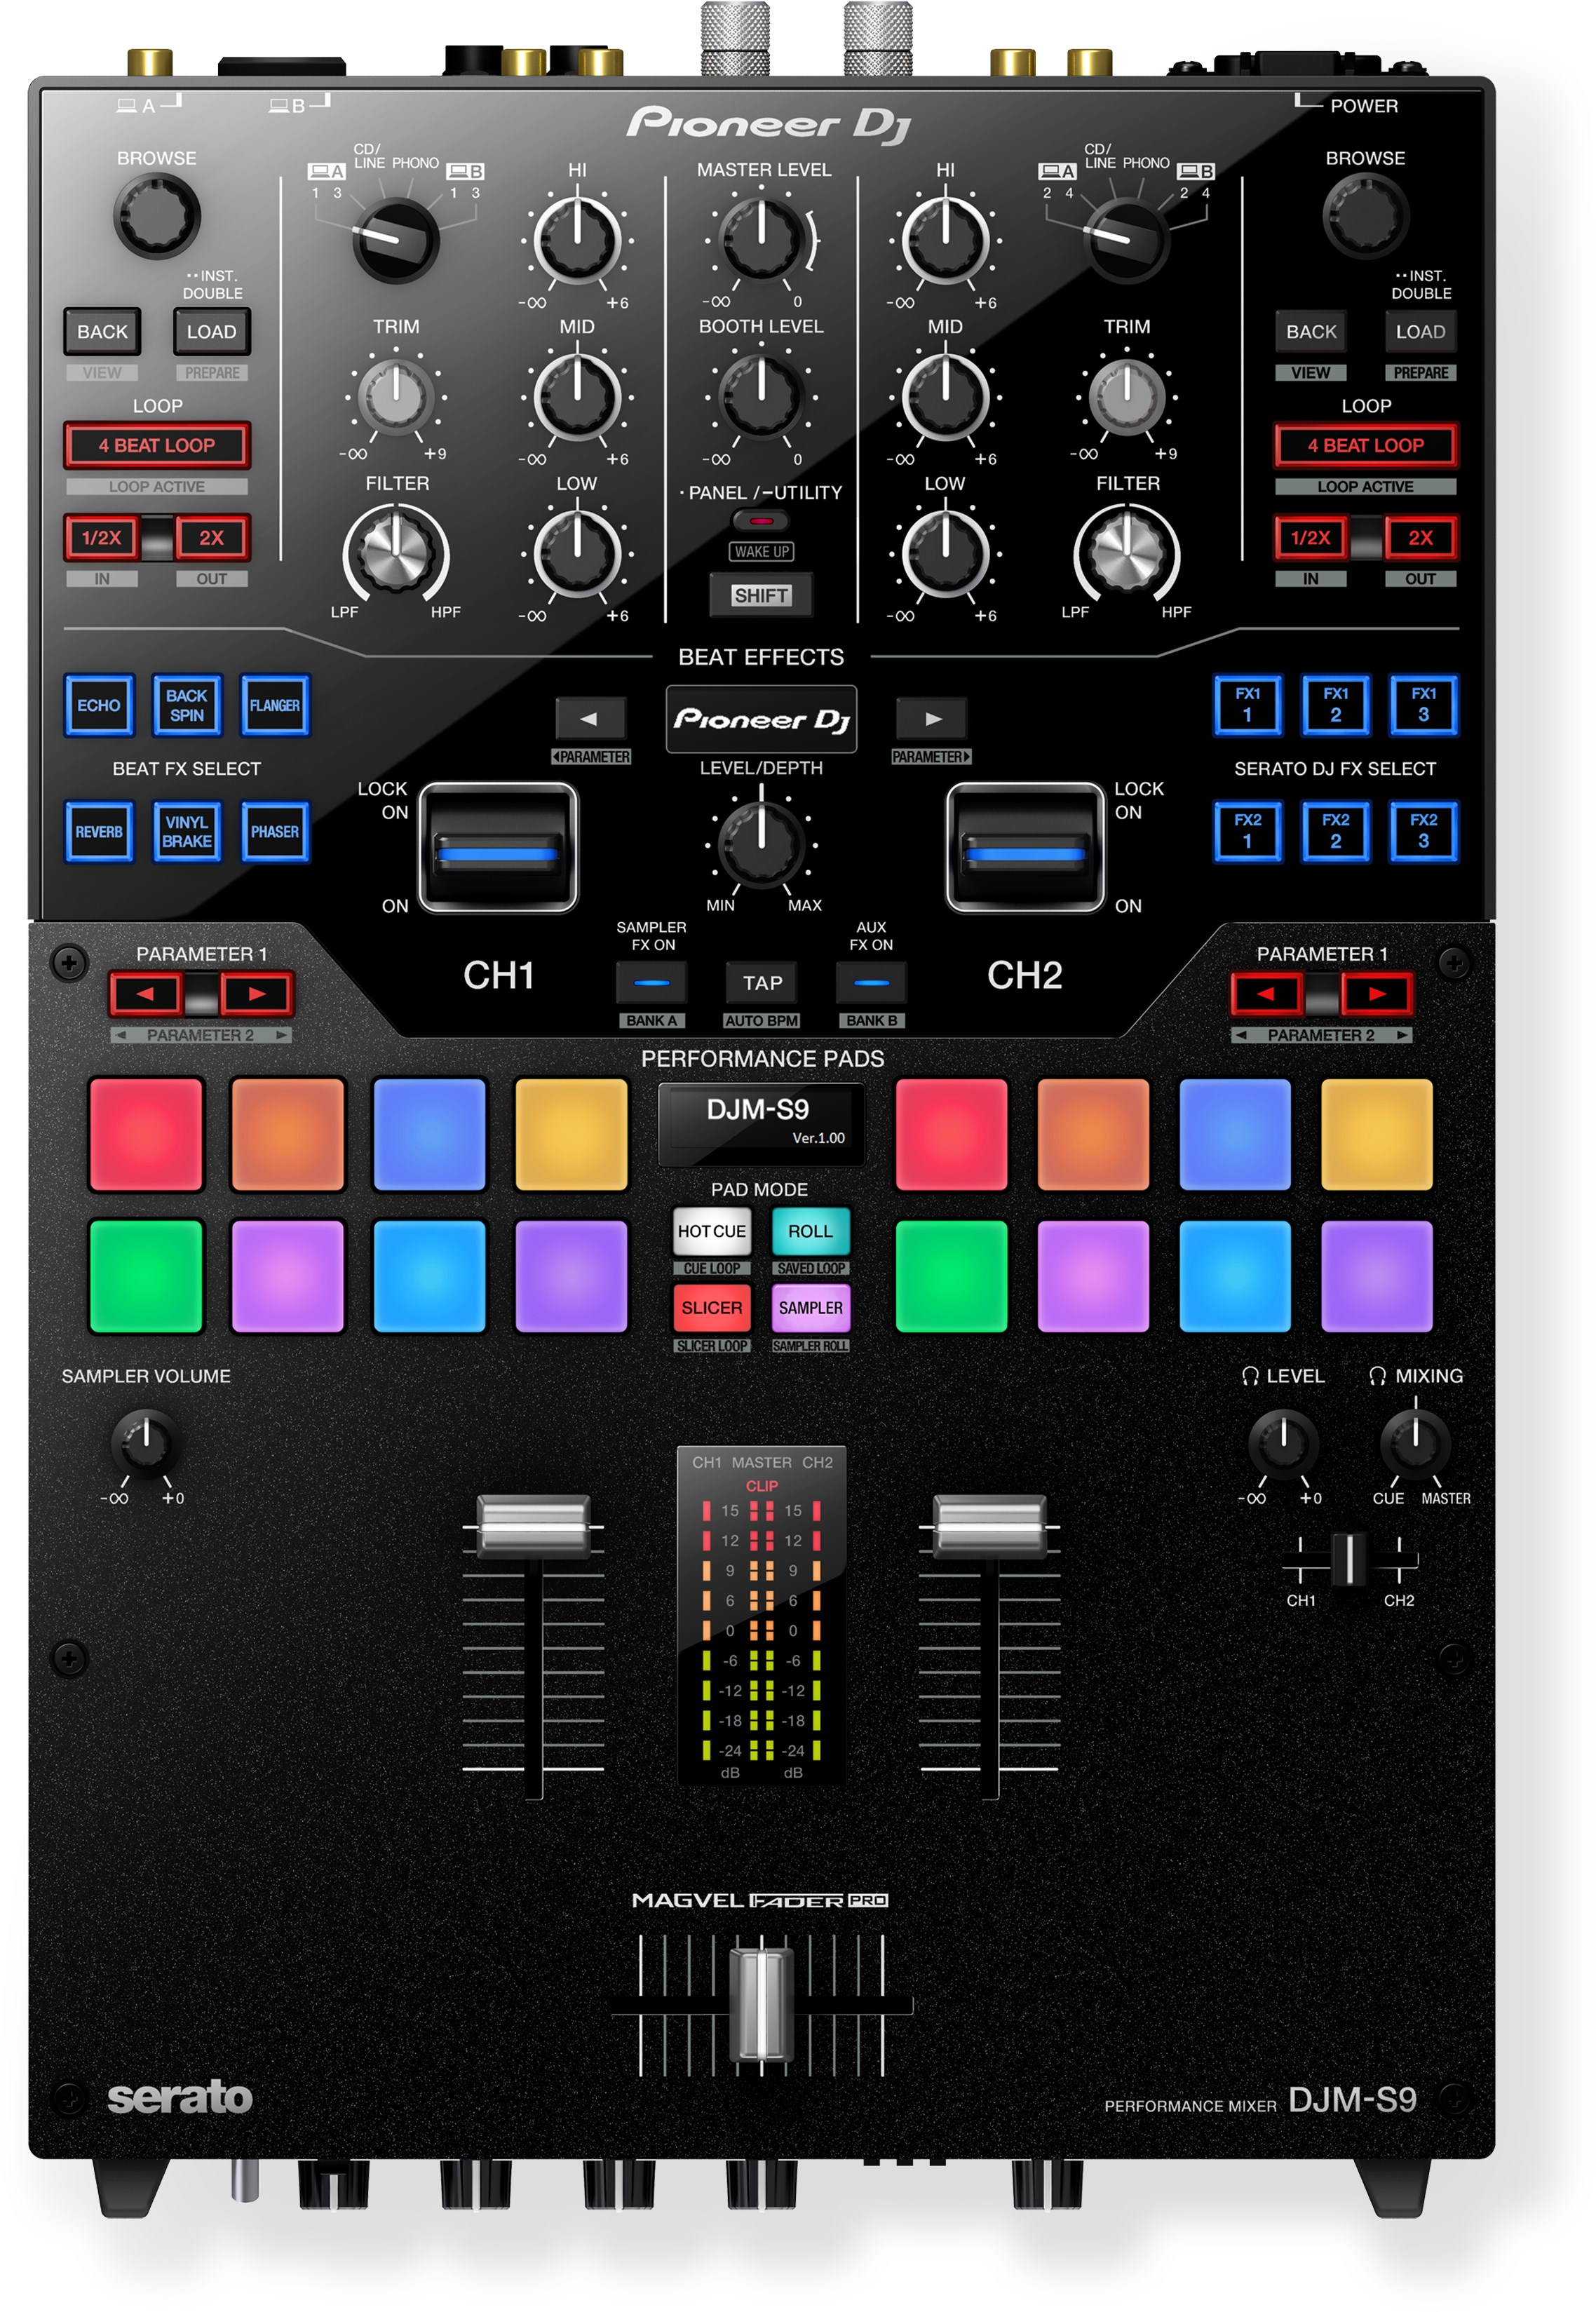 DJM-S9 Professional 2-Channel Mixer for Serato DJ - Black